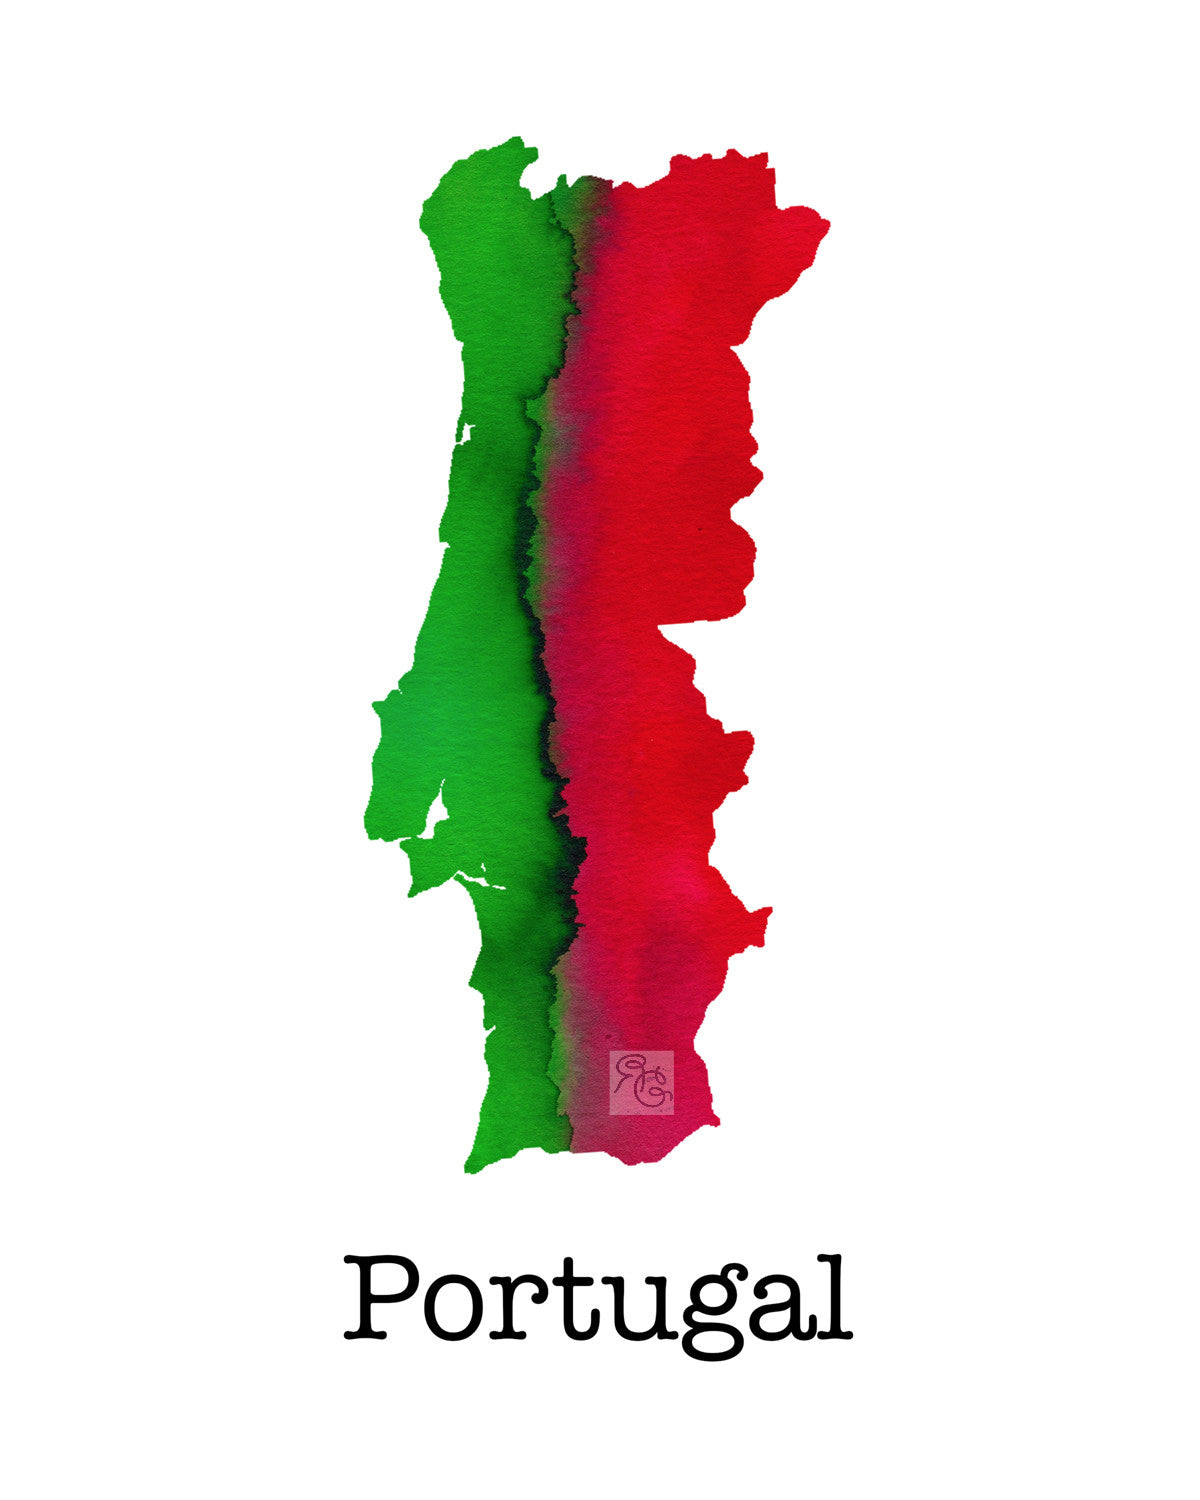 Watercolor Portugal (Ltd. Edition Giclée Print)